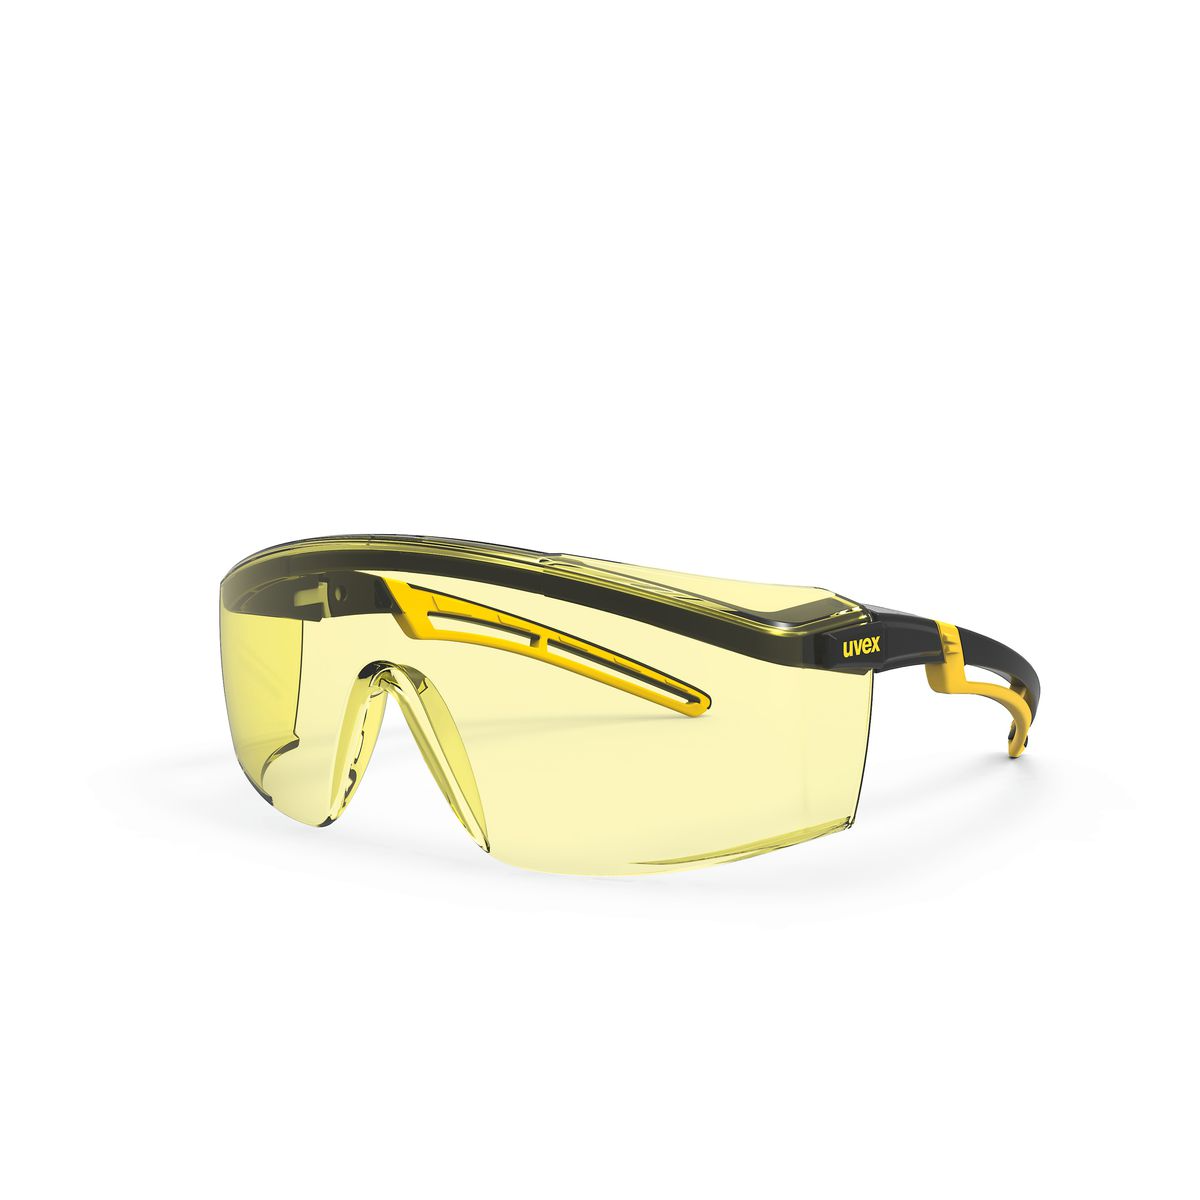 uvex astrospec 2.0 Safety spectacles - Amber